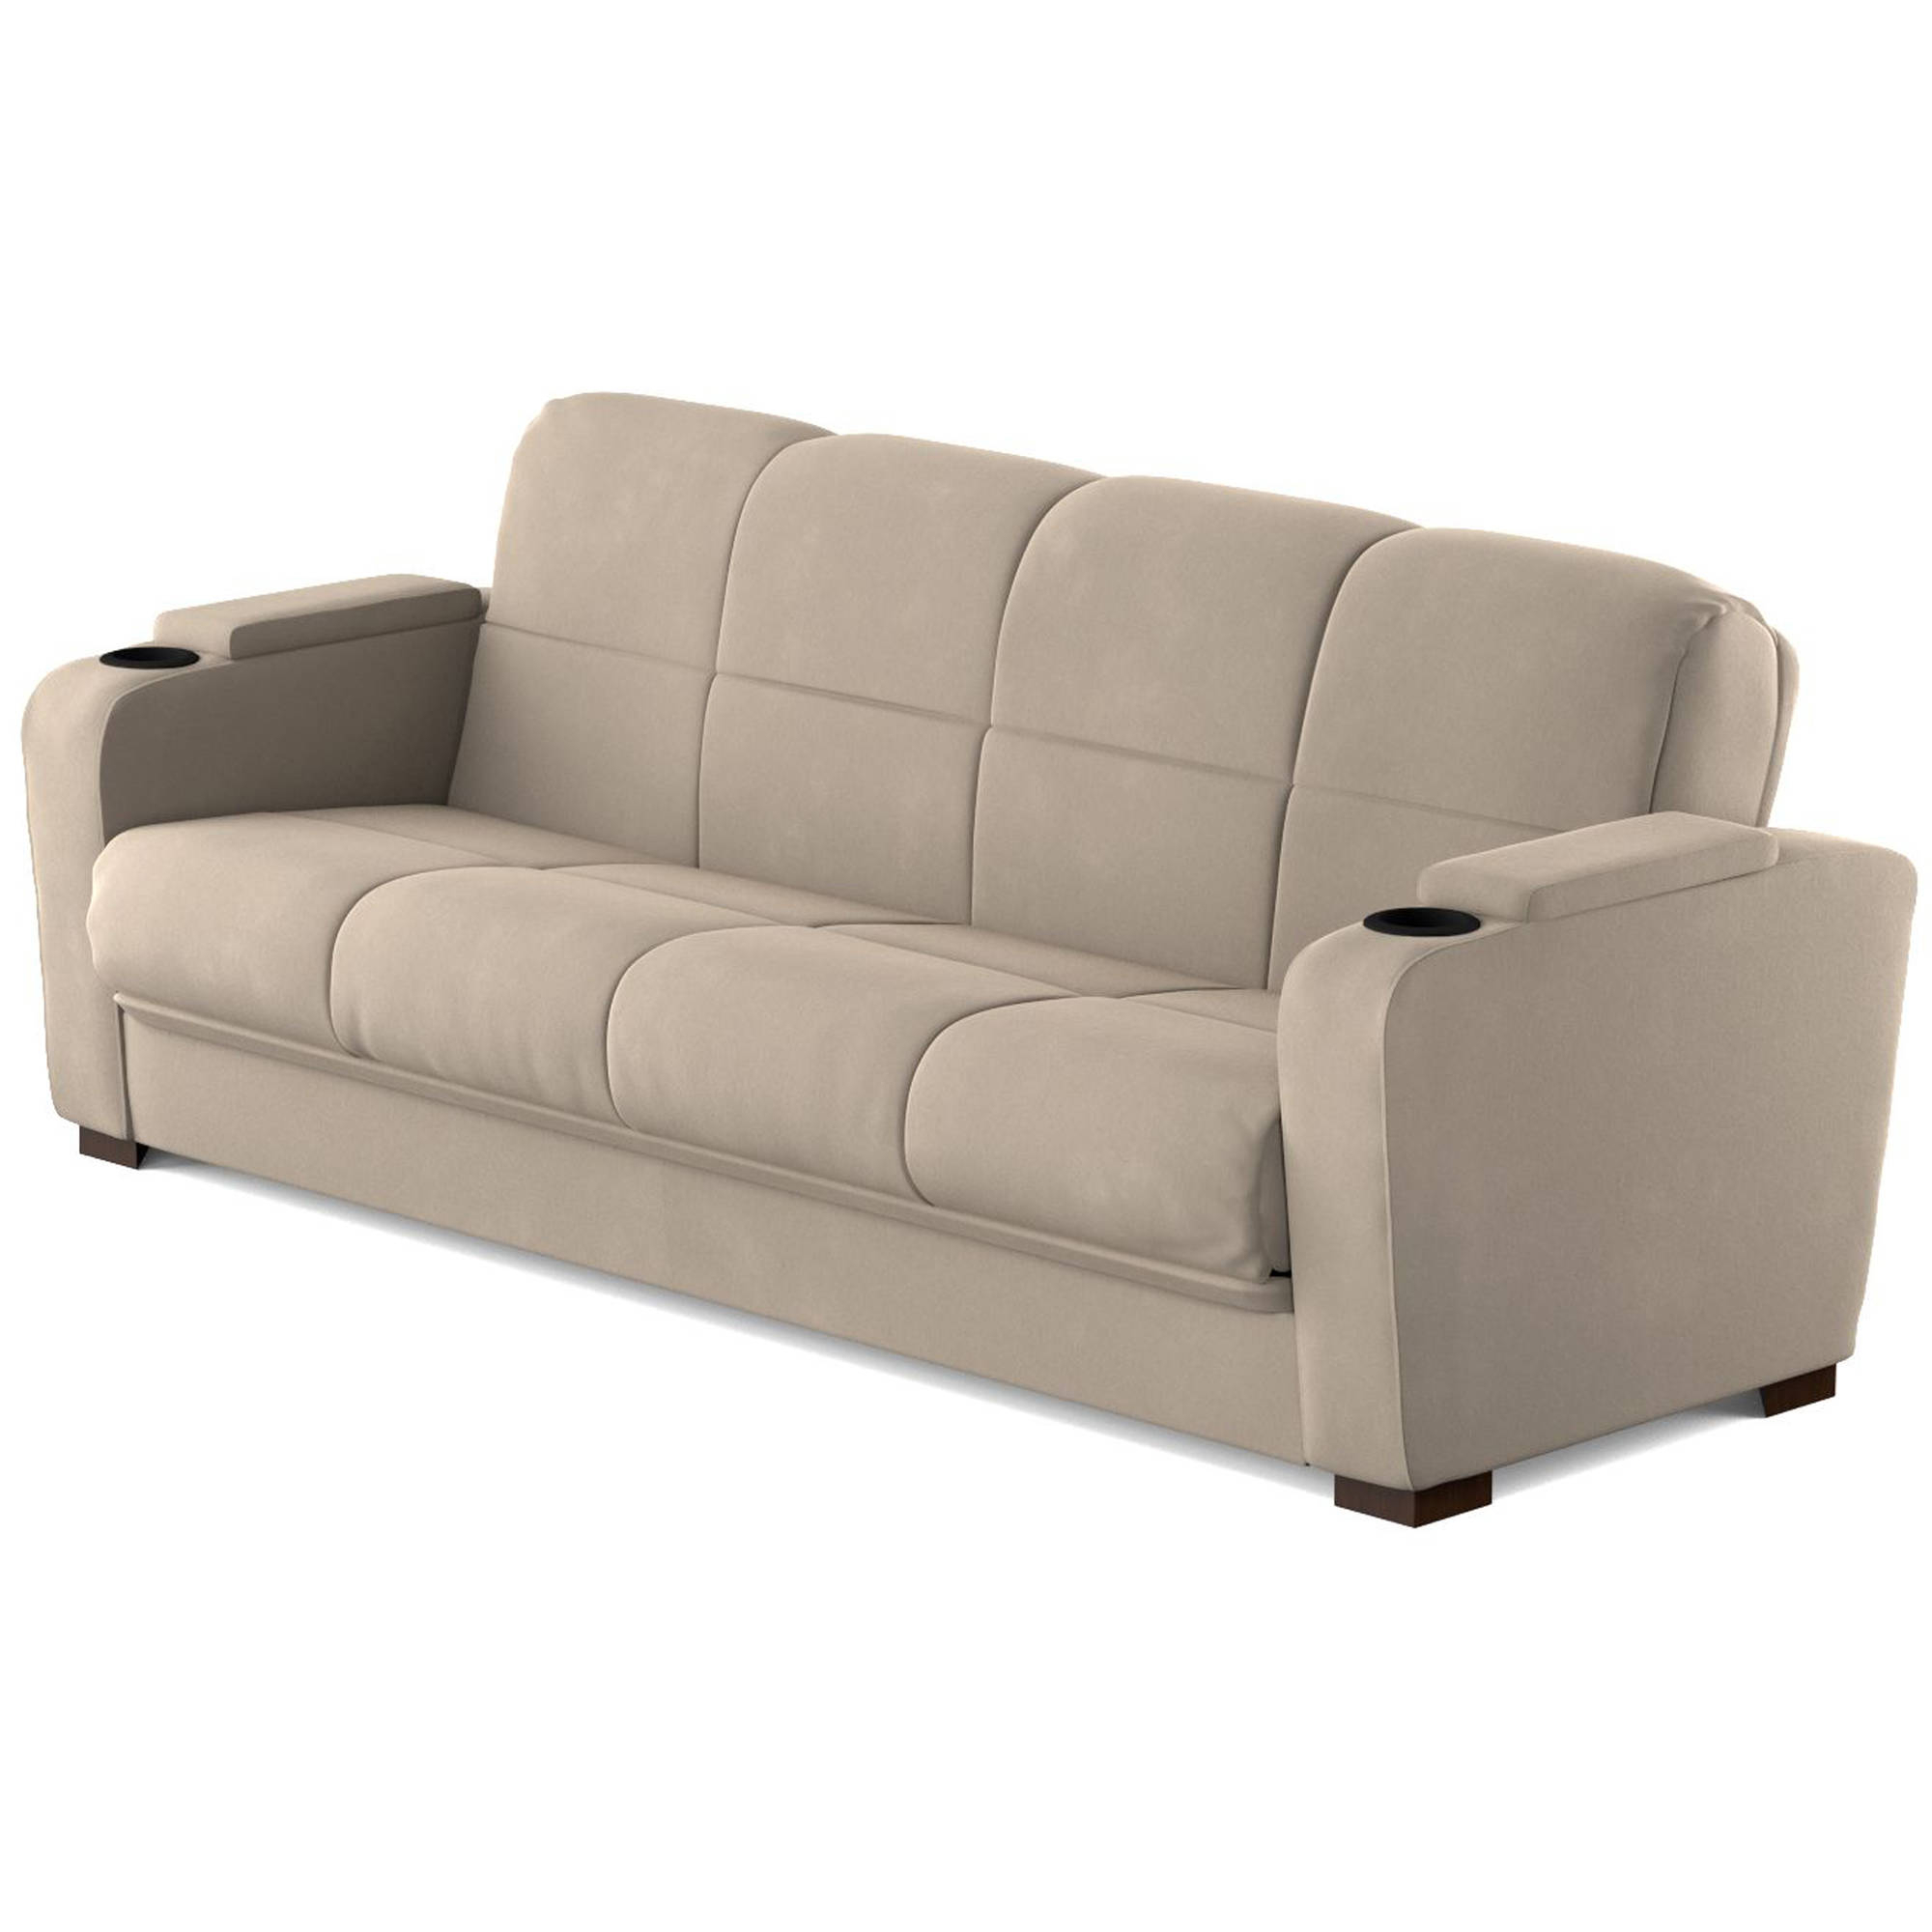 Mainstays Tyler Futon With Storage Sofa Sleeper Bed For 2018 Celine Sectional Futon Sofas With Storage Reclining Couch (View 4 of 25)